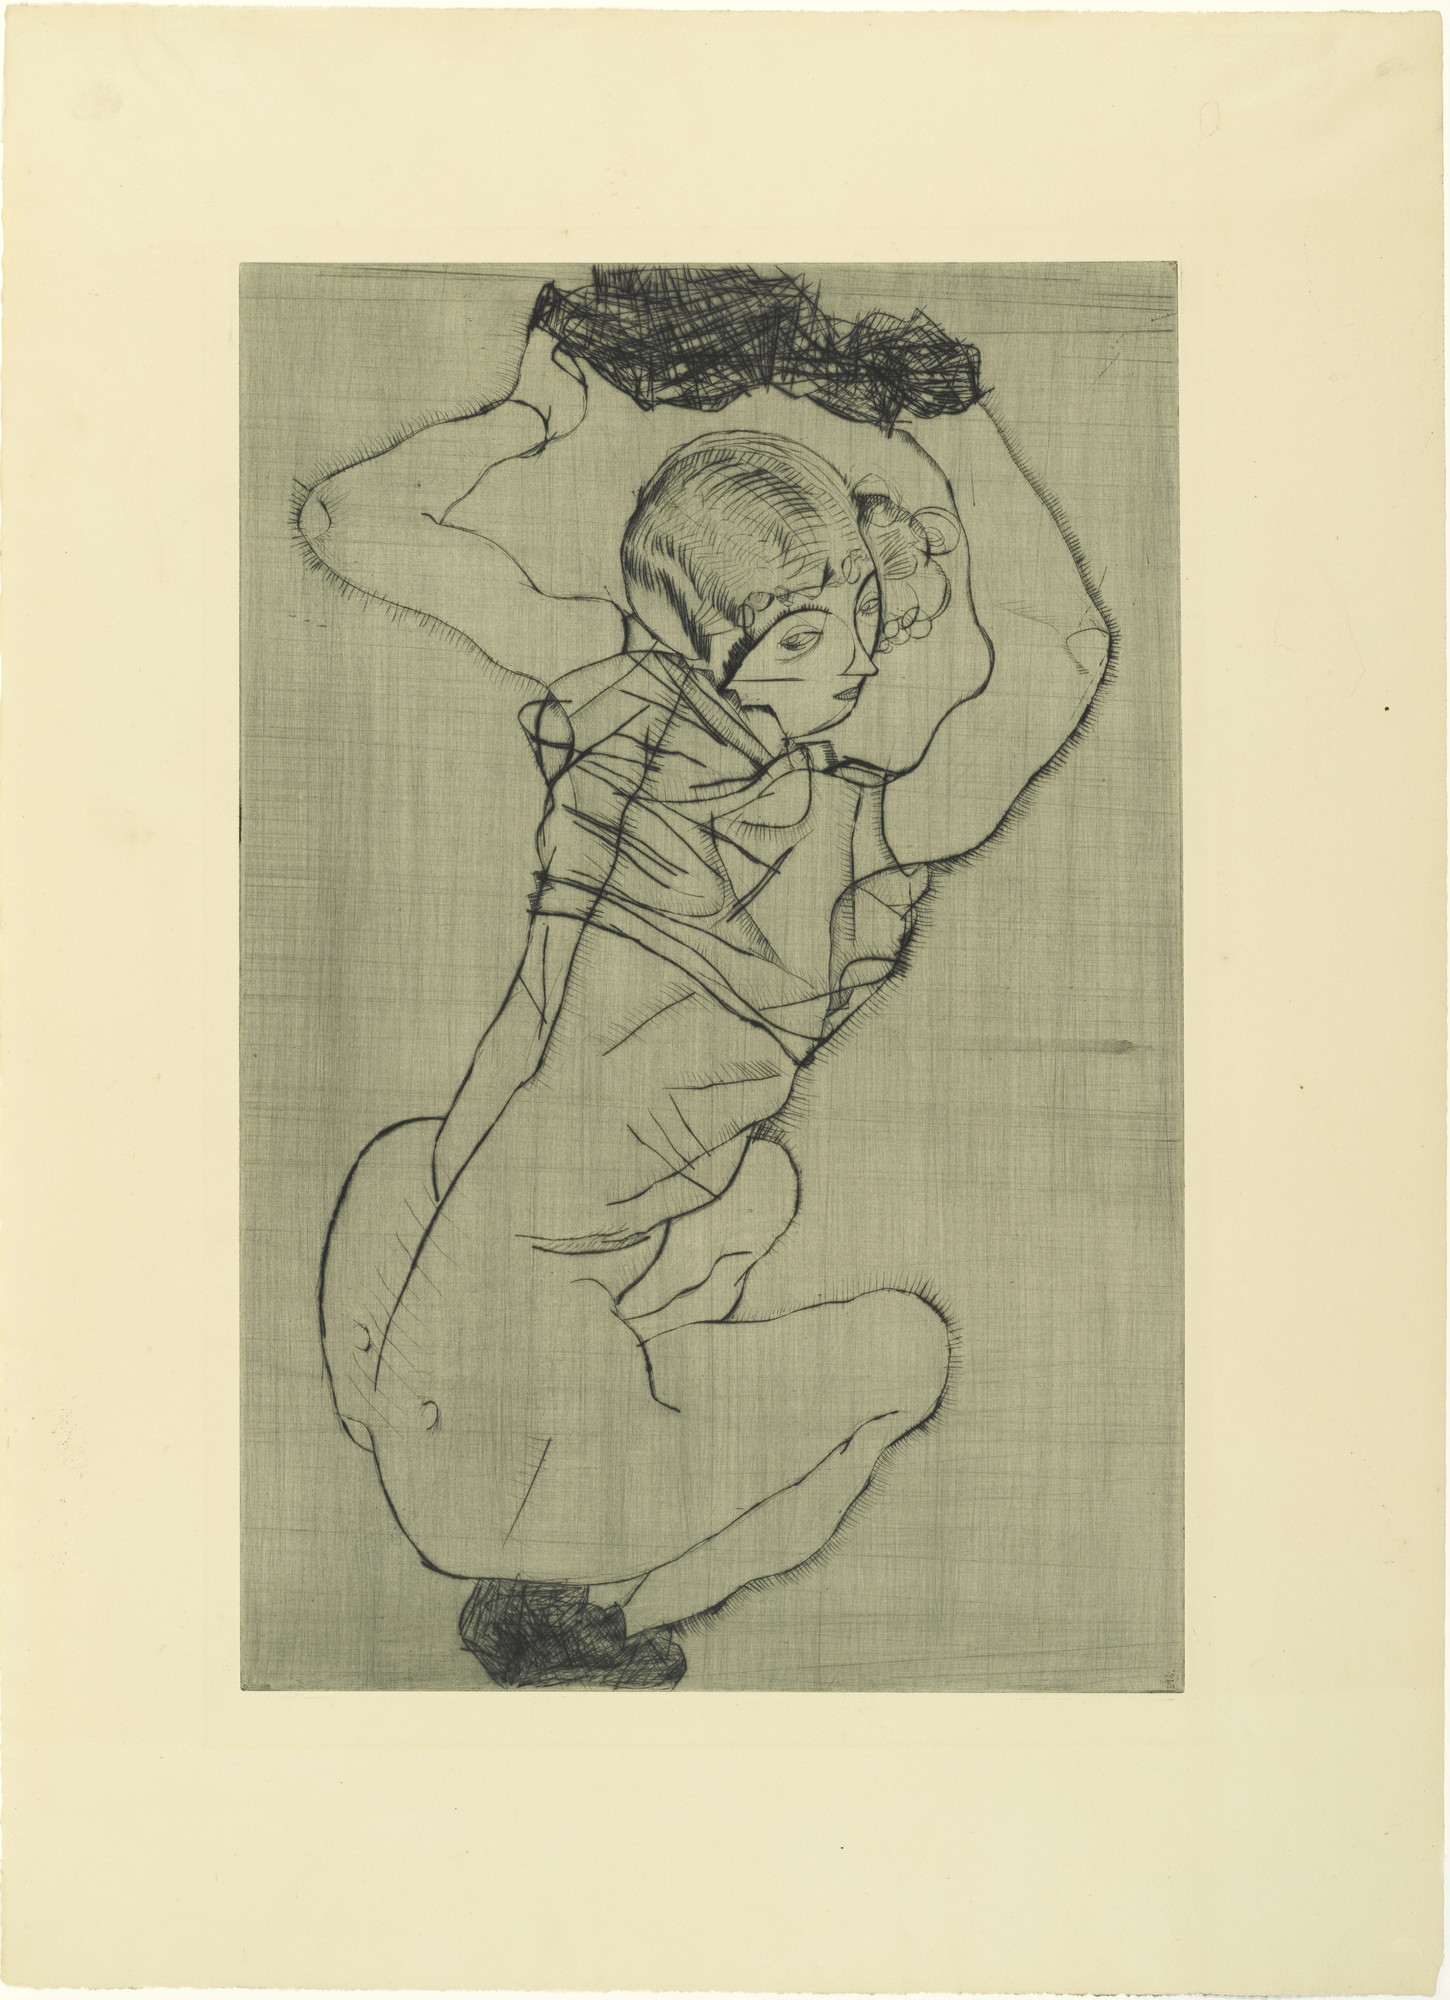 Egon Schiele. Squatting Woman (Kauernde) from The Graphic Work of Egon Schiele (Das Graphische Werk von Egon Schiele). (1914, published 1922)